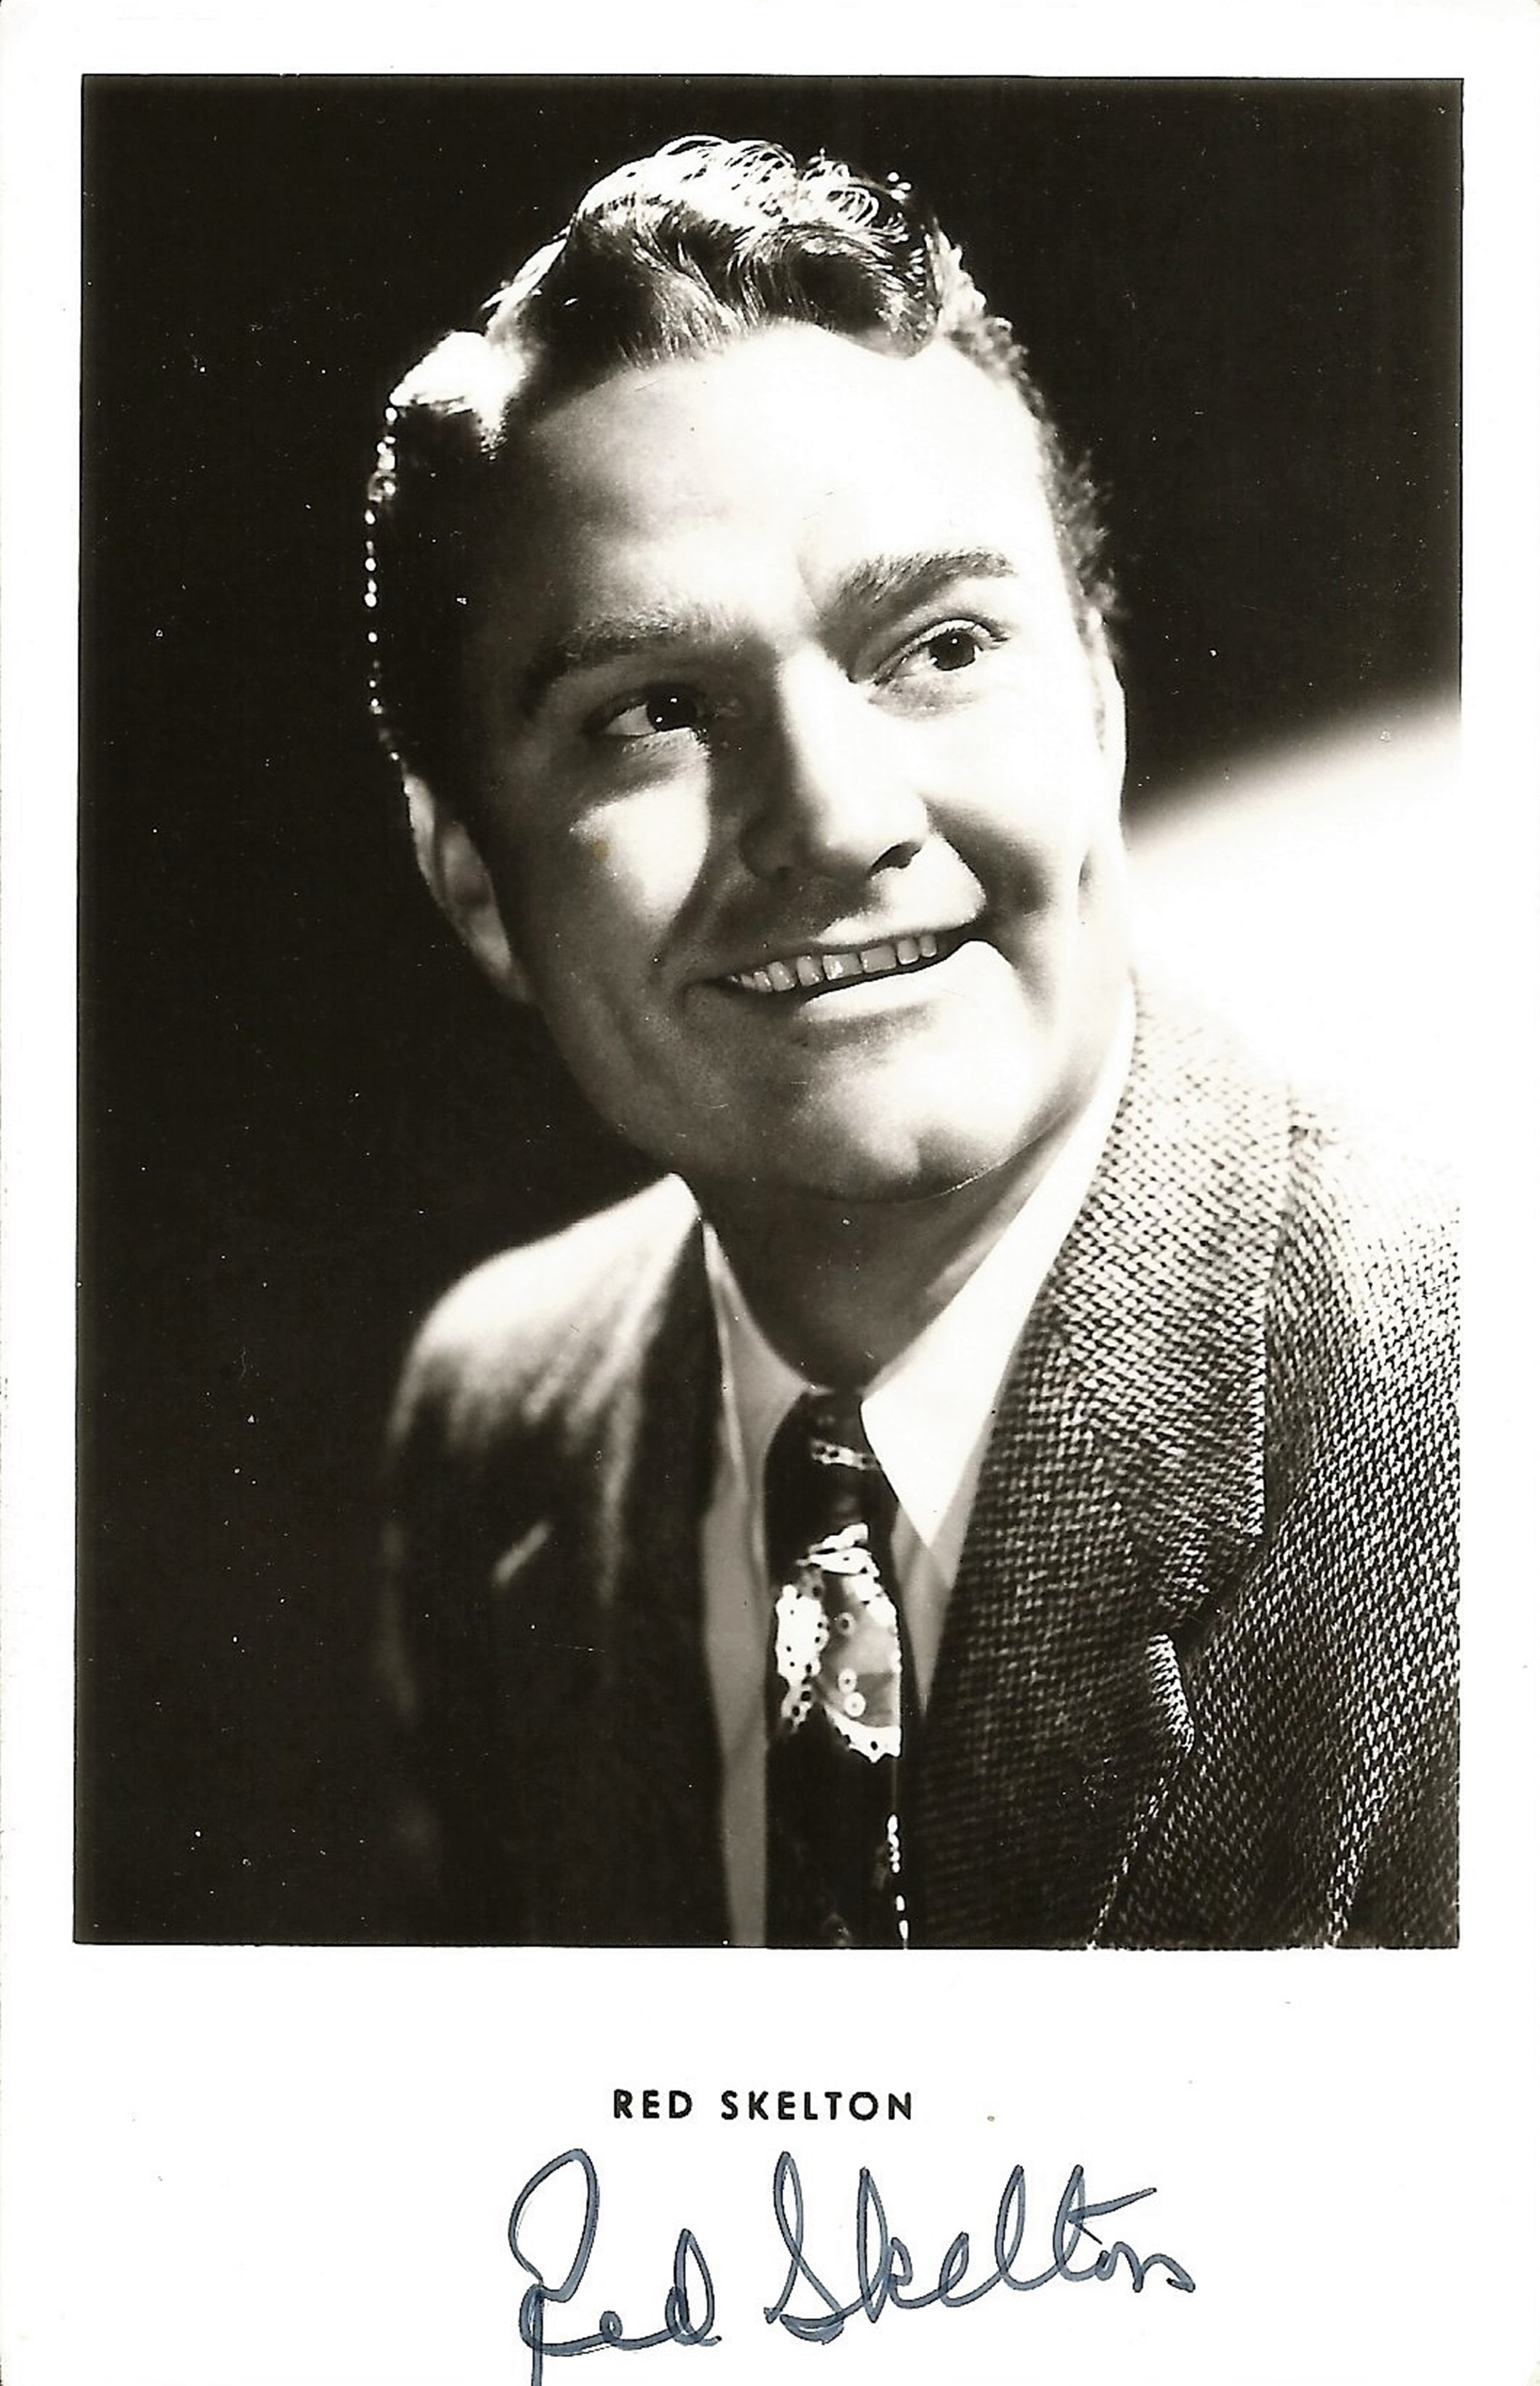 Red Skelton signed 5x3 black and white photo. Good condition. All autographs come with a Certificate